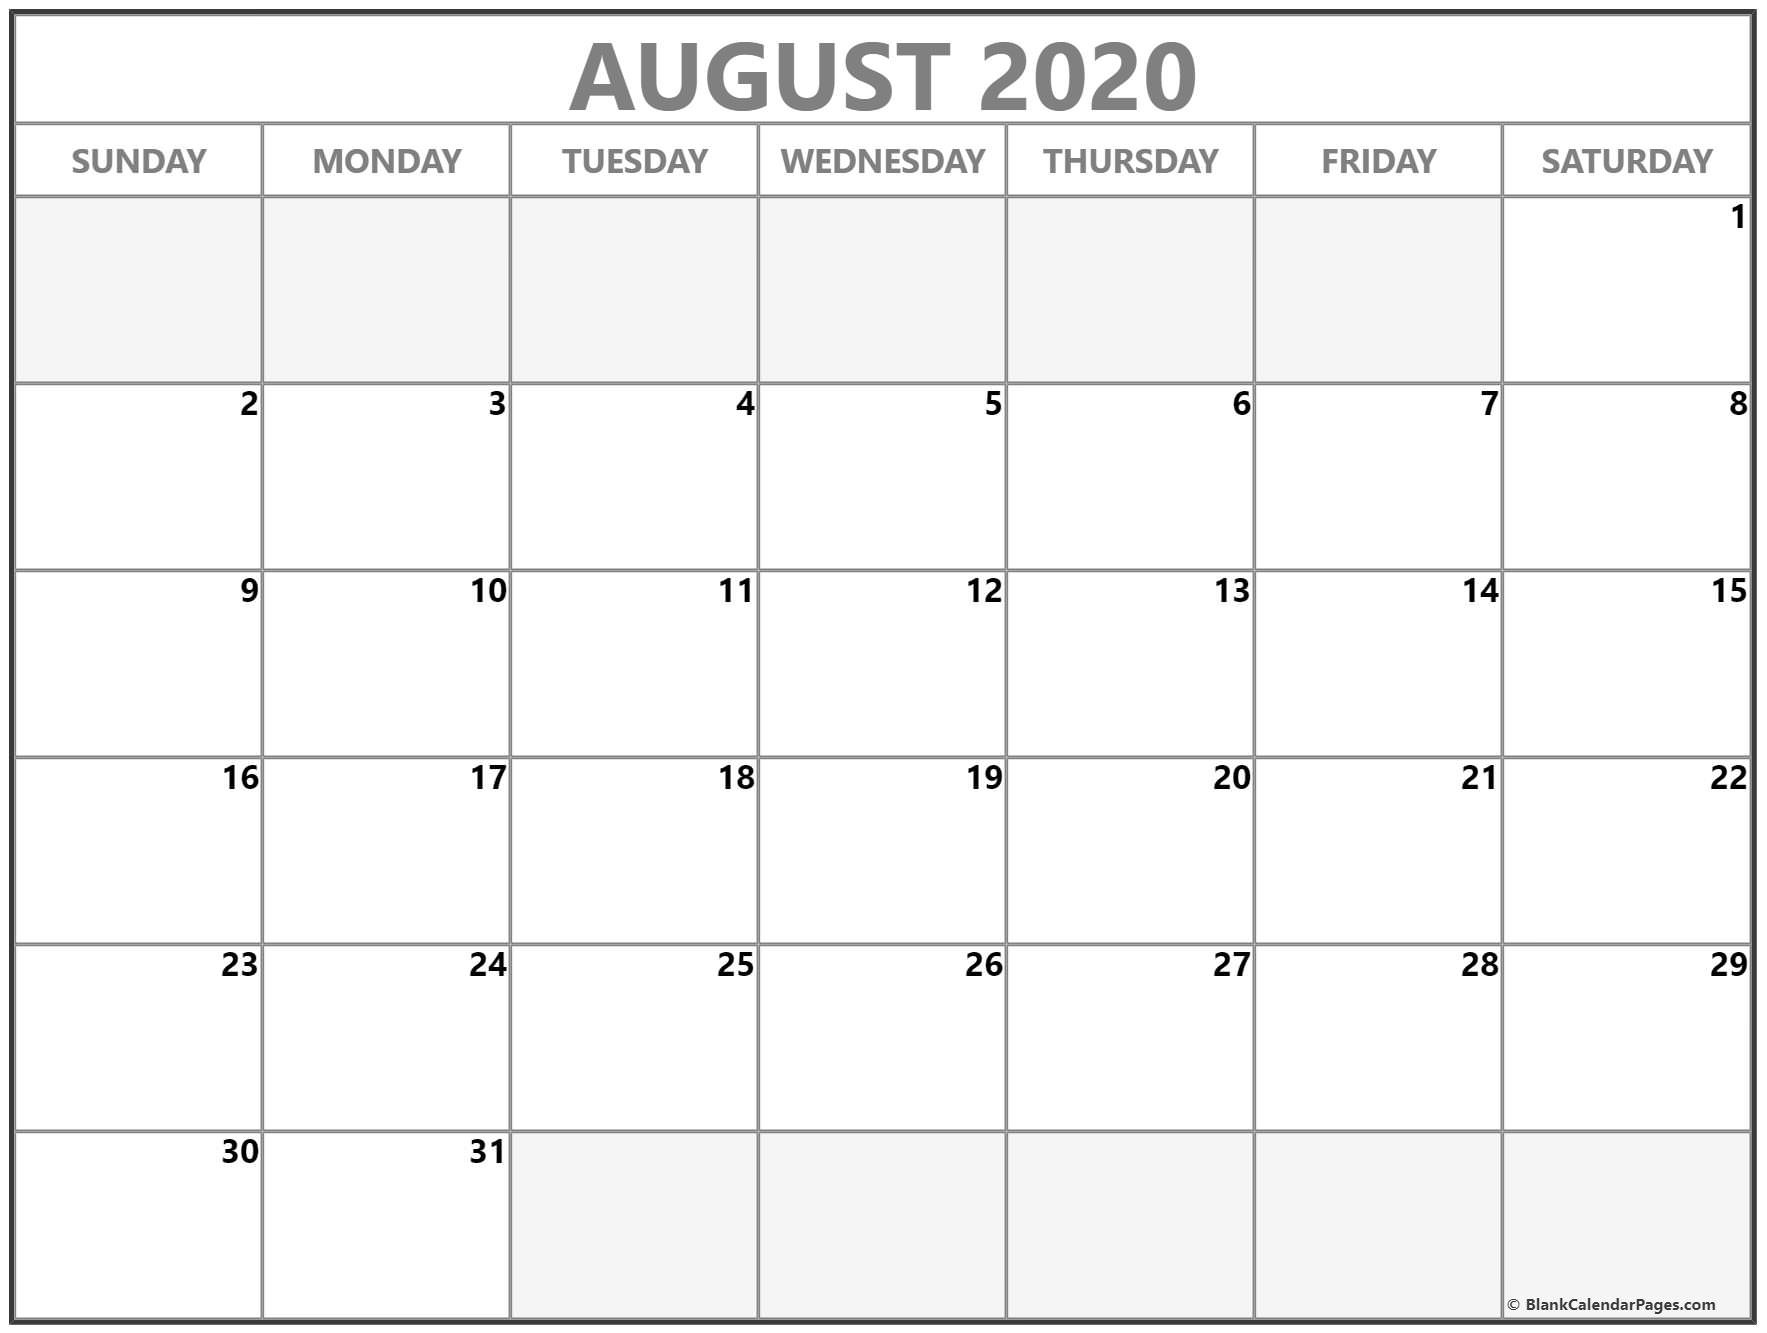 August 2020 Calendar | Free Printable Monthly Calendars  August 2020 Calendar